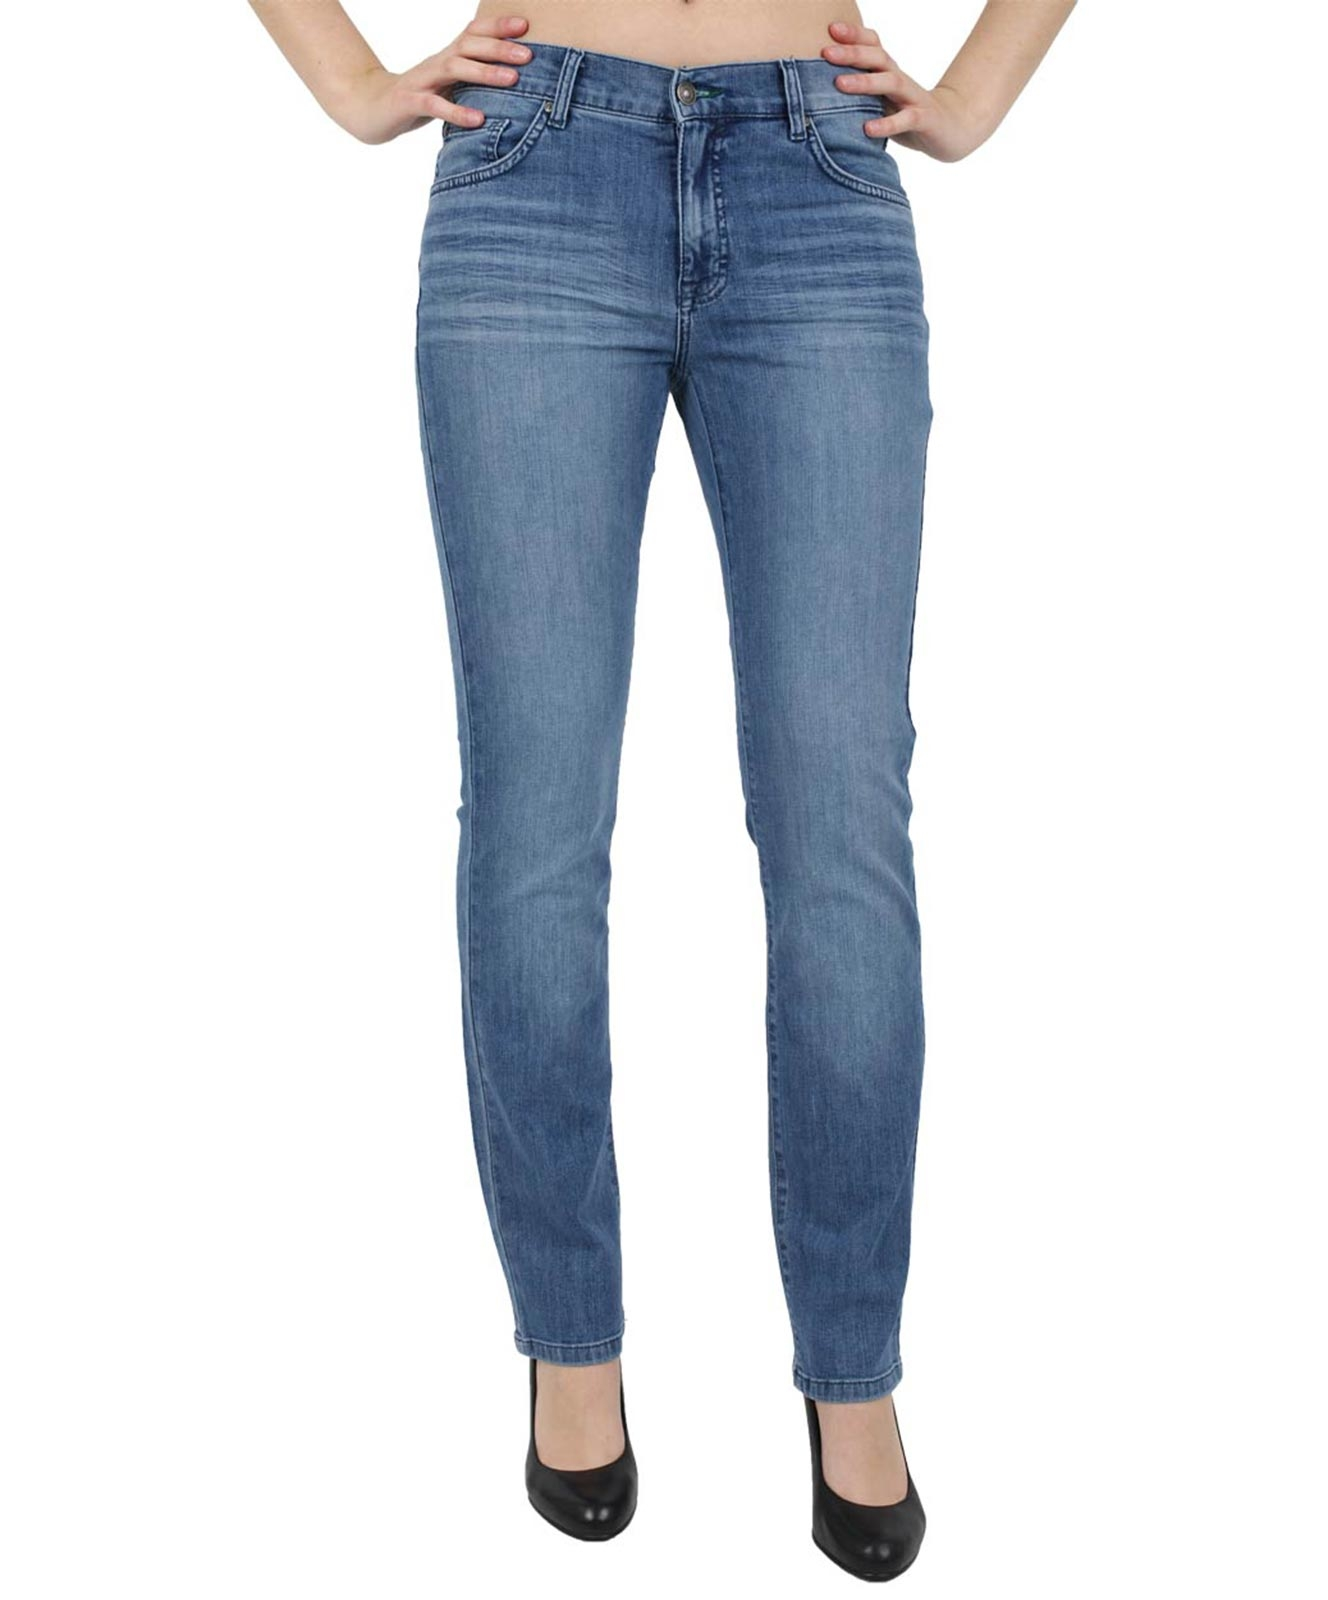 Hosen - Angels Straight Leg Jeans Cici in S.Stone Used Buffi  - Onlineshop Jeans Meile